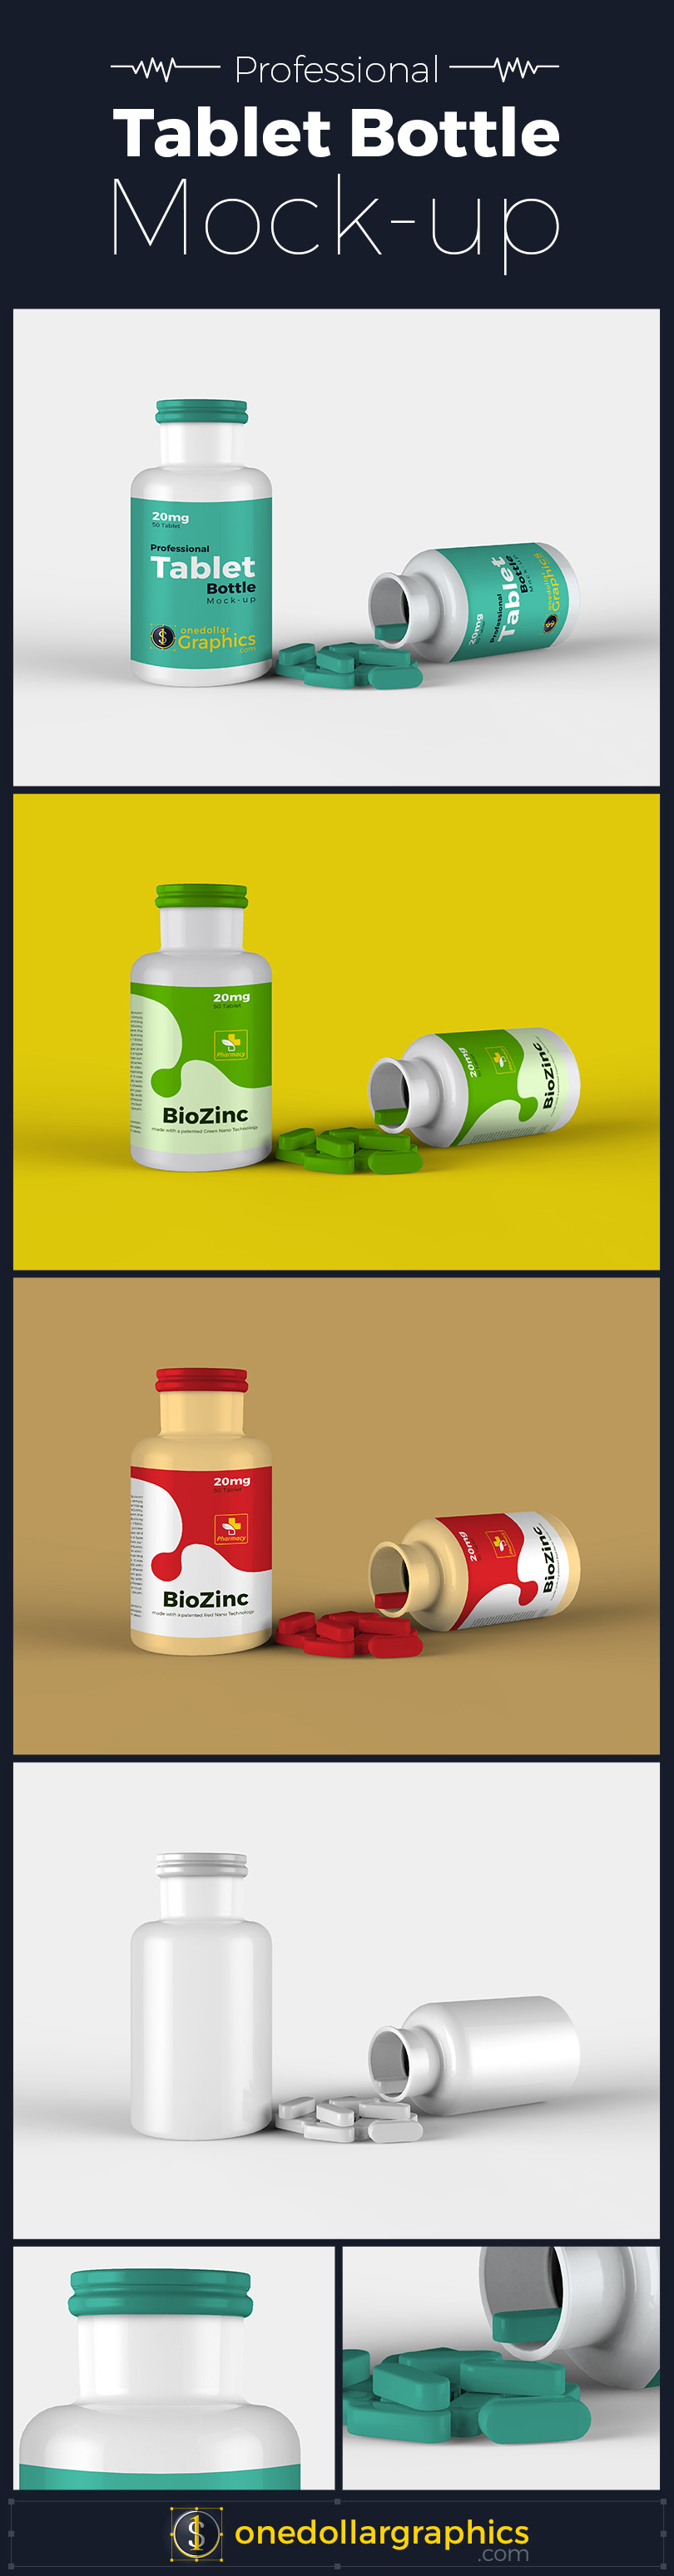 medicine-packaging-bottle-mock-up-psd-final